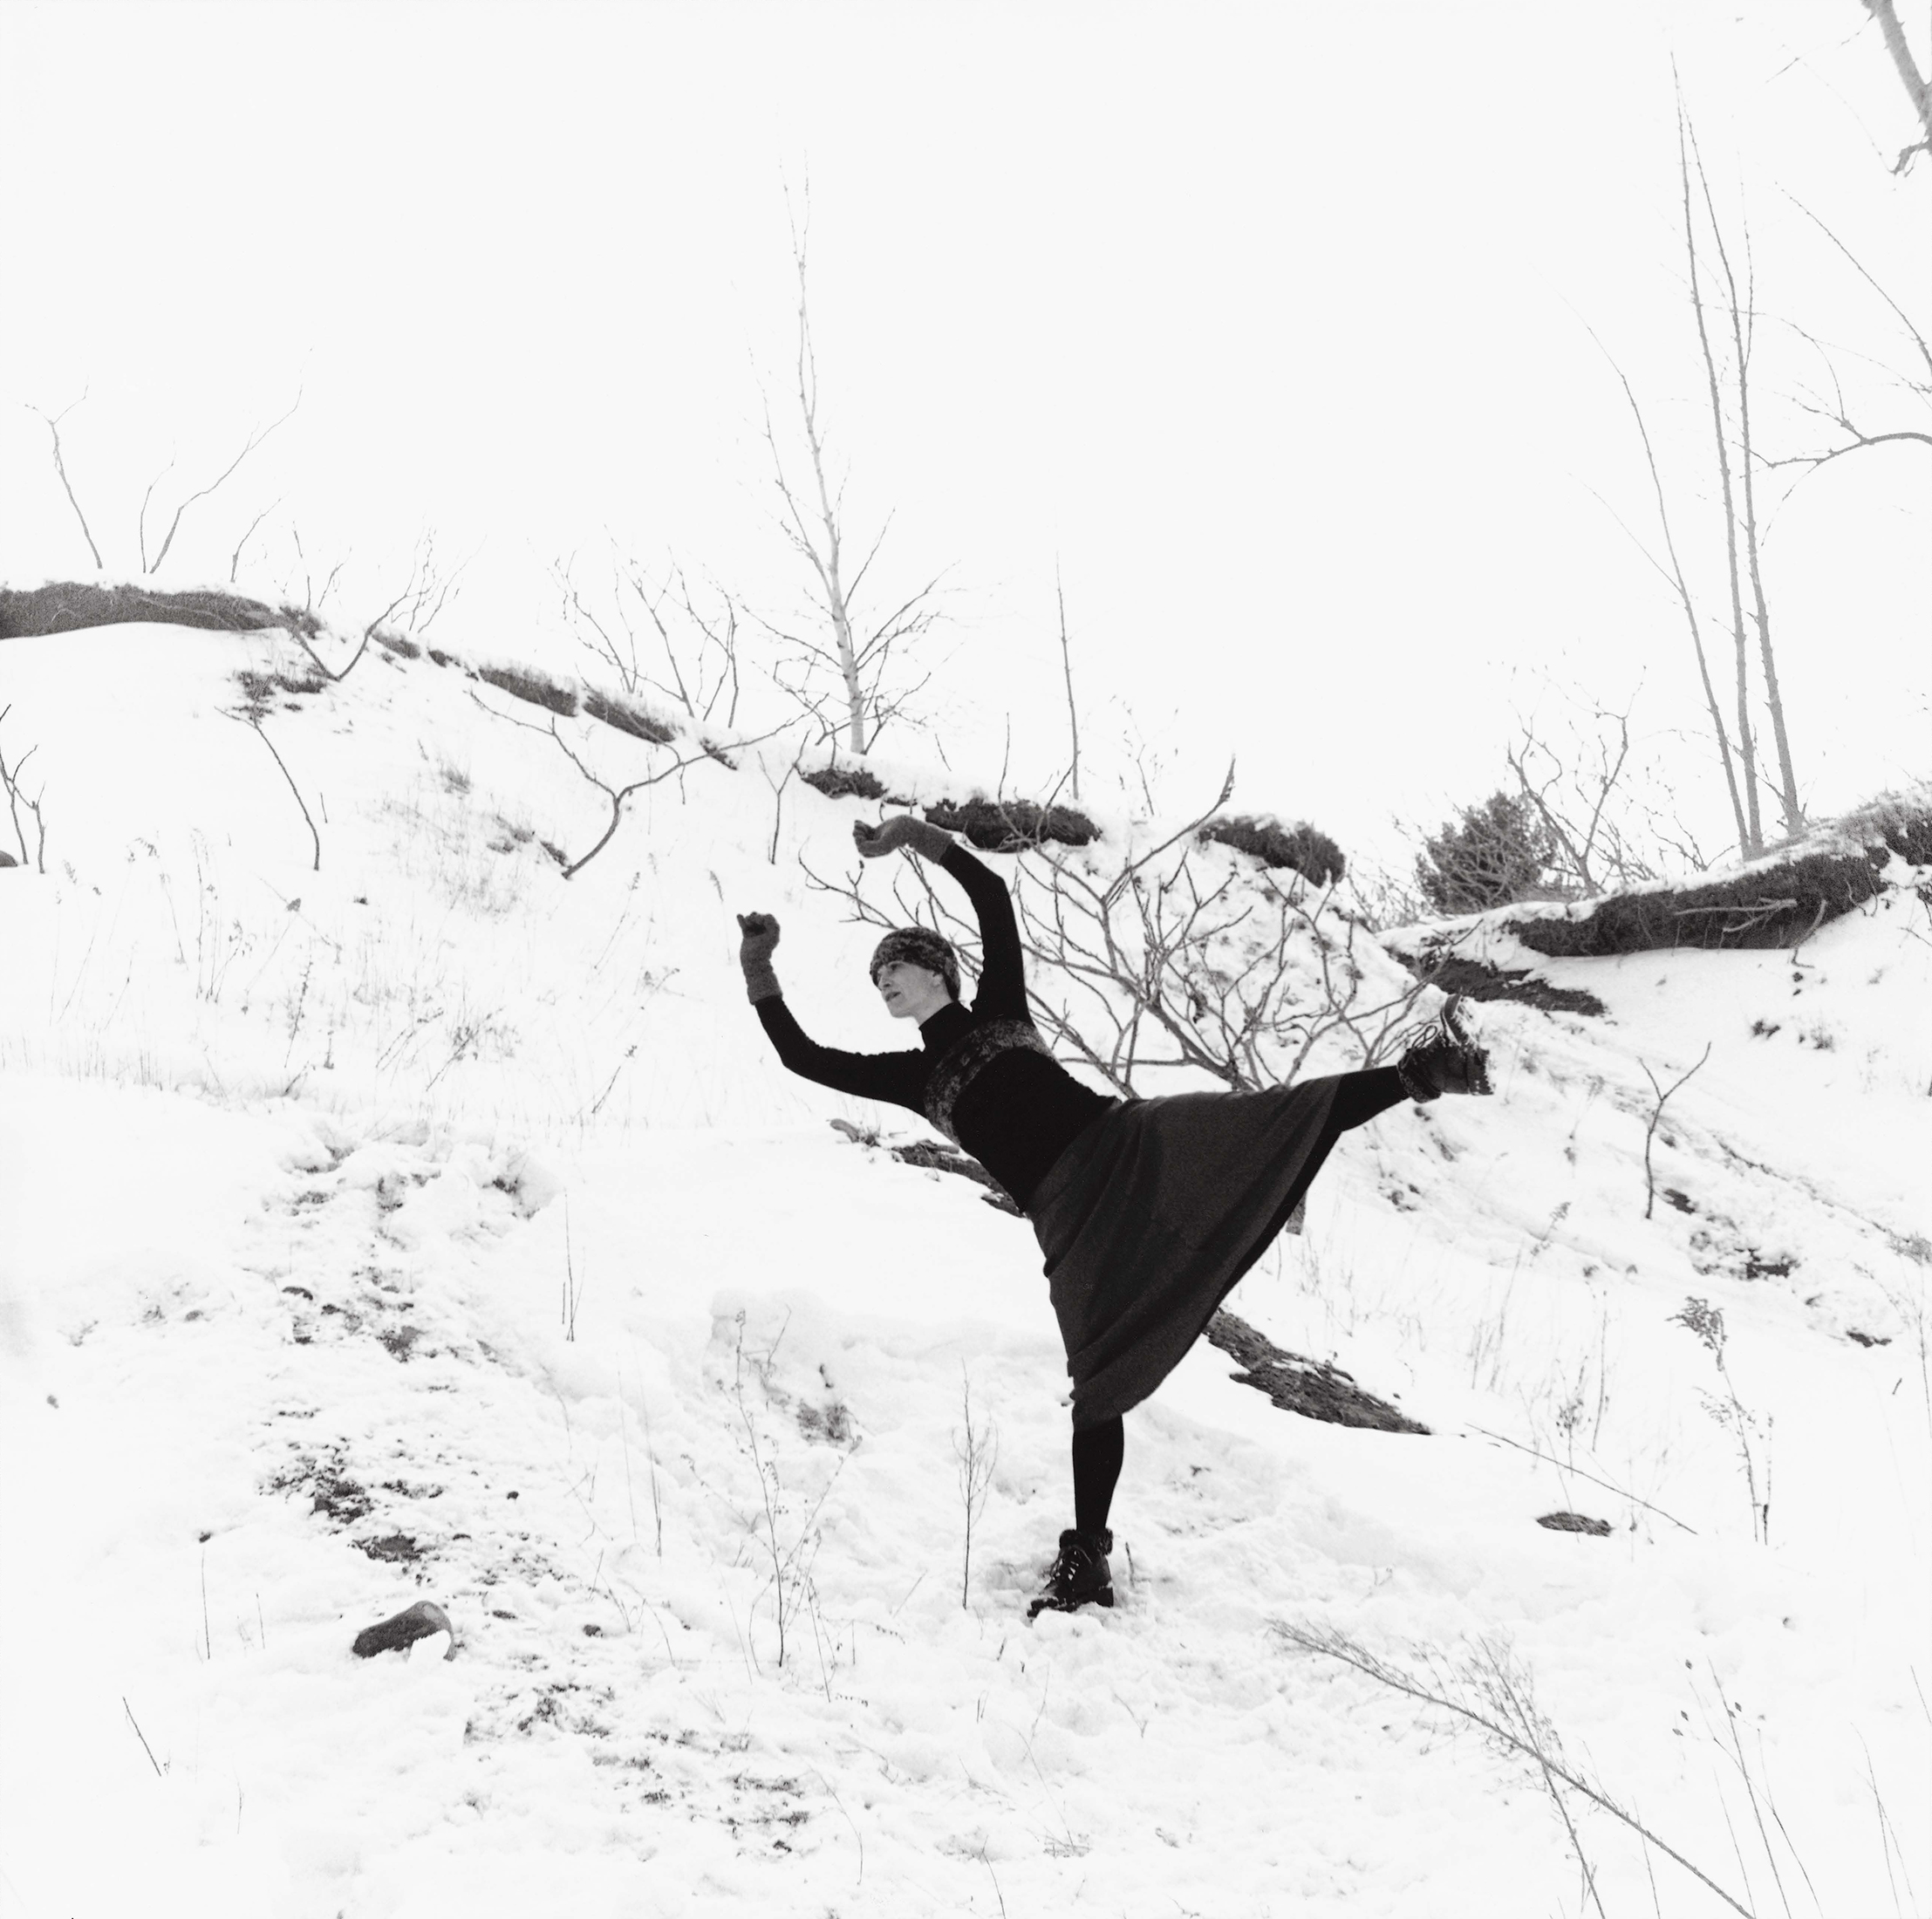 In a wintery landscape, a woman is performing a dance movement on the edge of a snow-covered mound. She is leaning forward with her knees bent and her arms raised behind her like the wings of a bird.